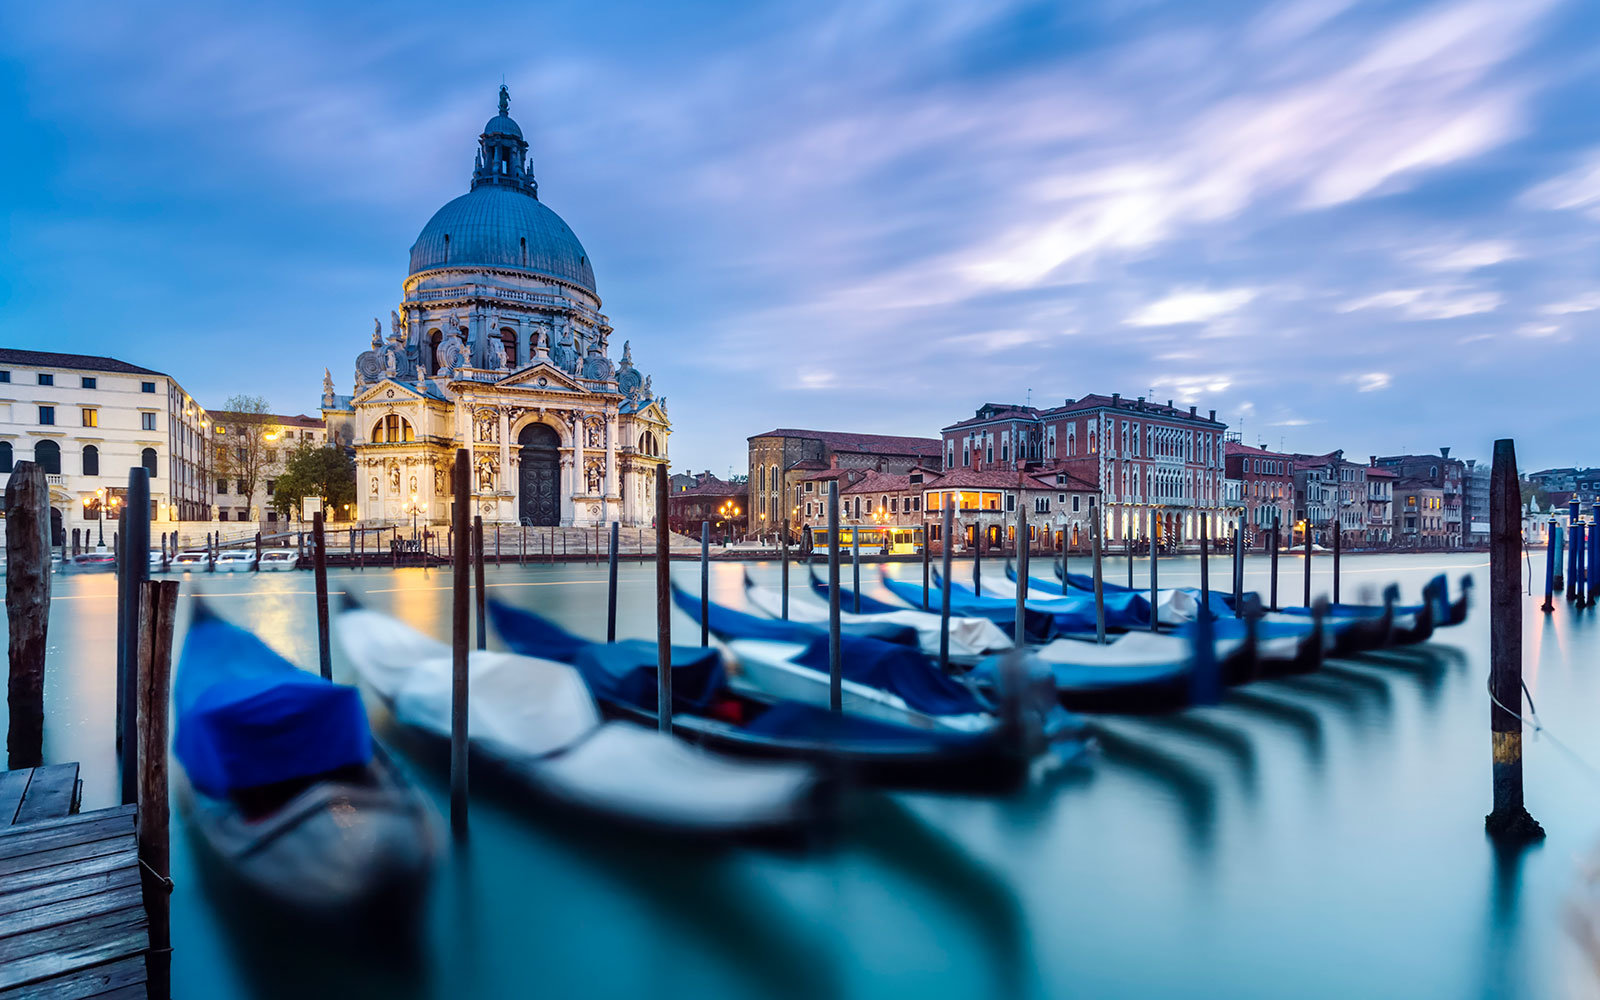 Italy, Veneto, Venice. Santa Maria della Salute church on the Grand Canal